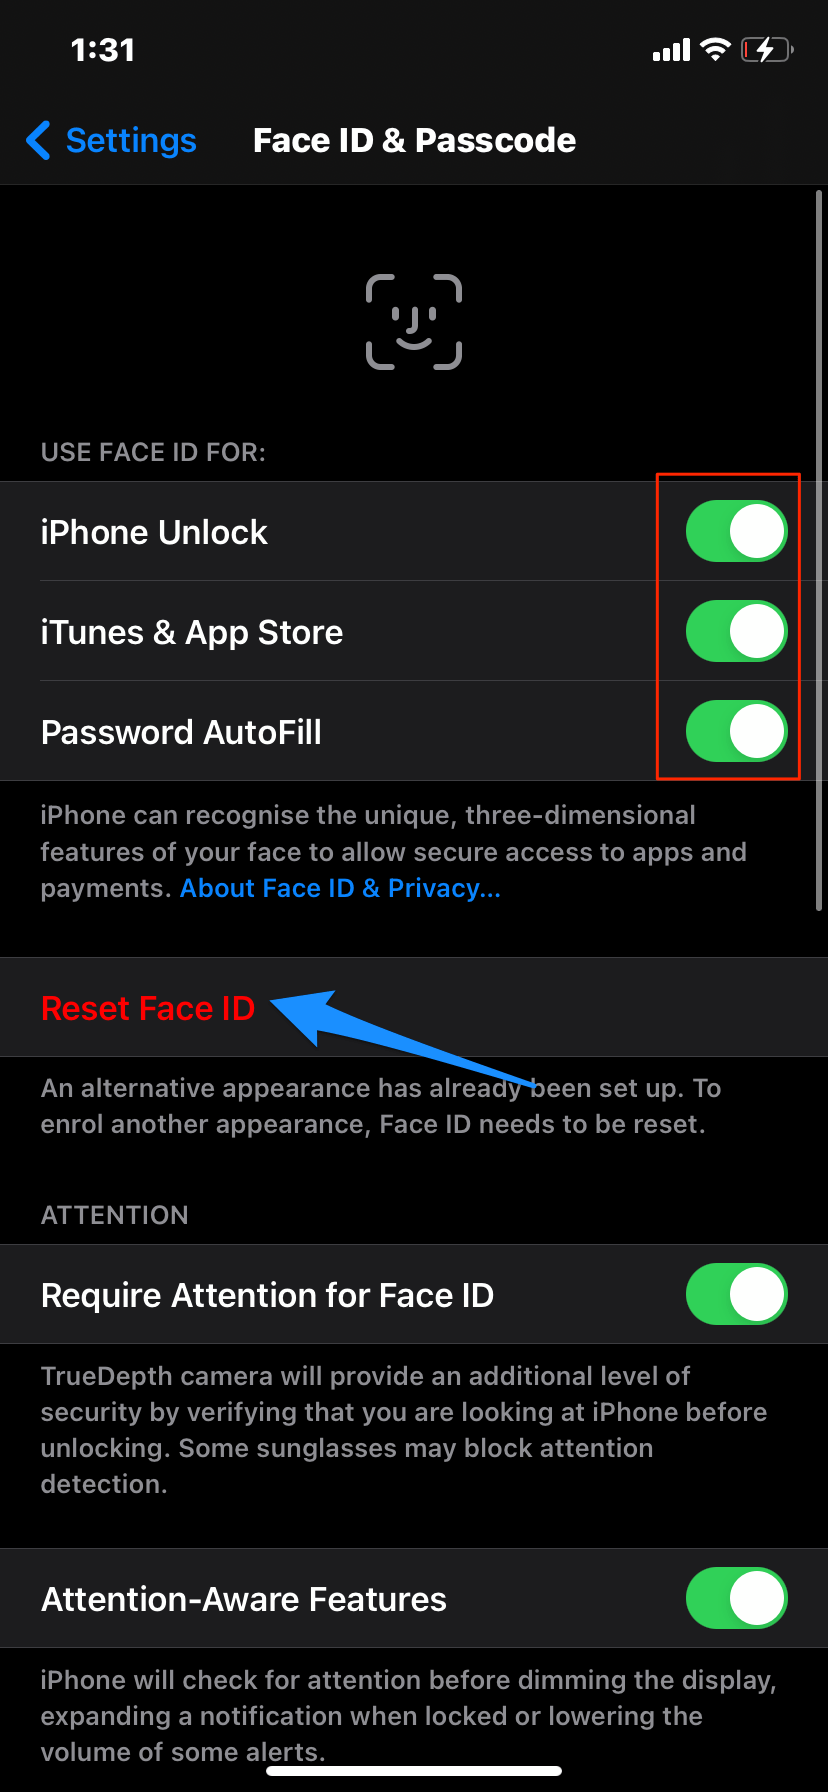 Reset_Face_ID